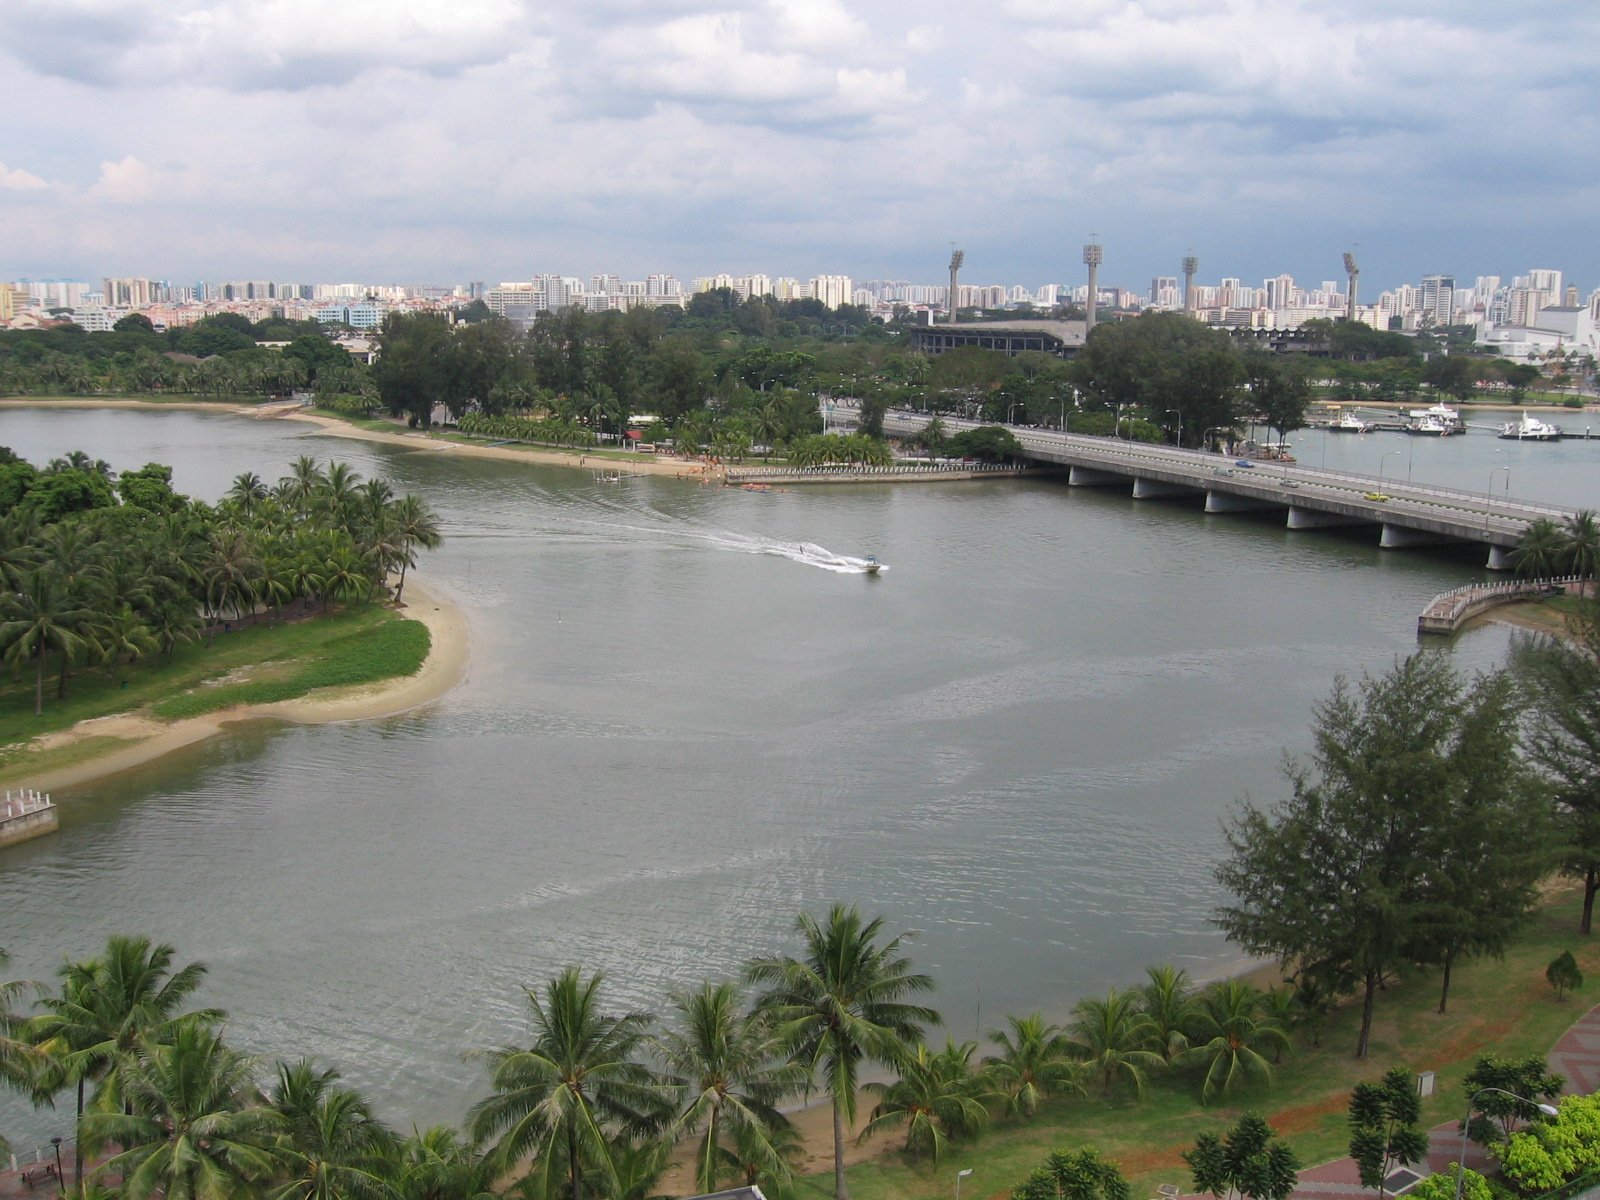 use //commons.wikimedia.org/wiki/File:Kallang_River_Mouth,_Dec_05.JPG